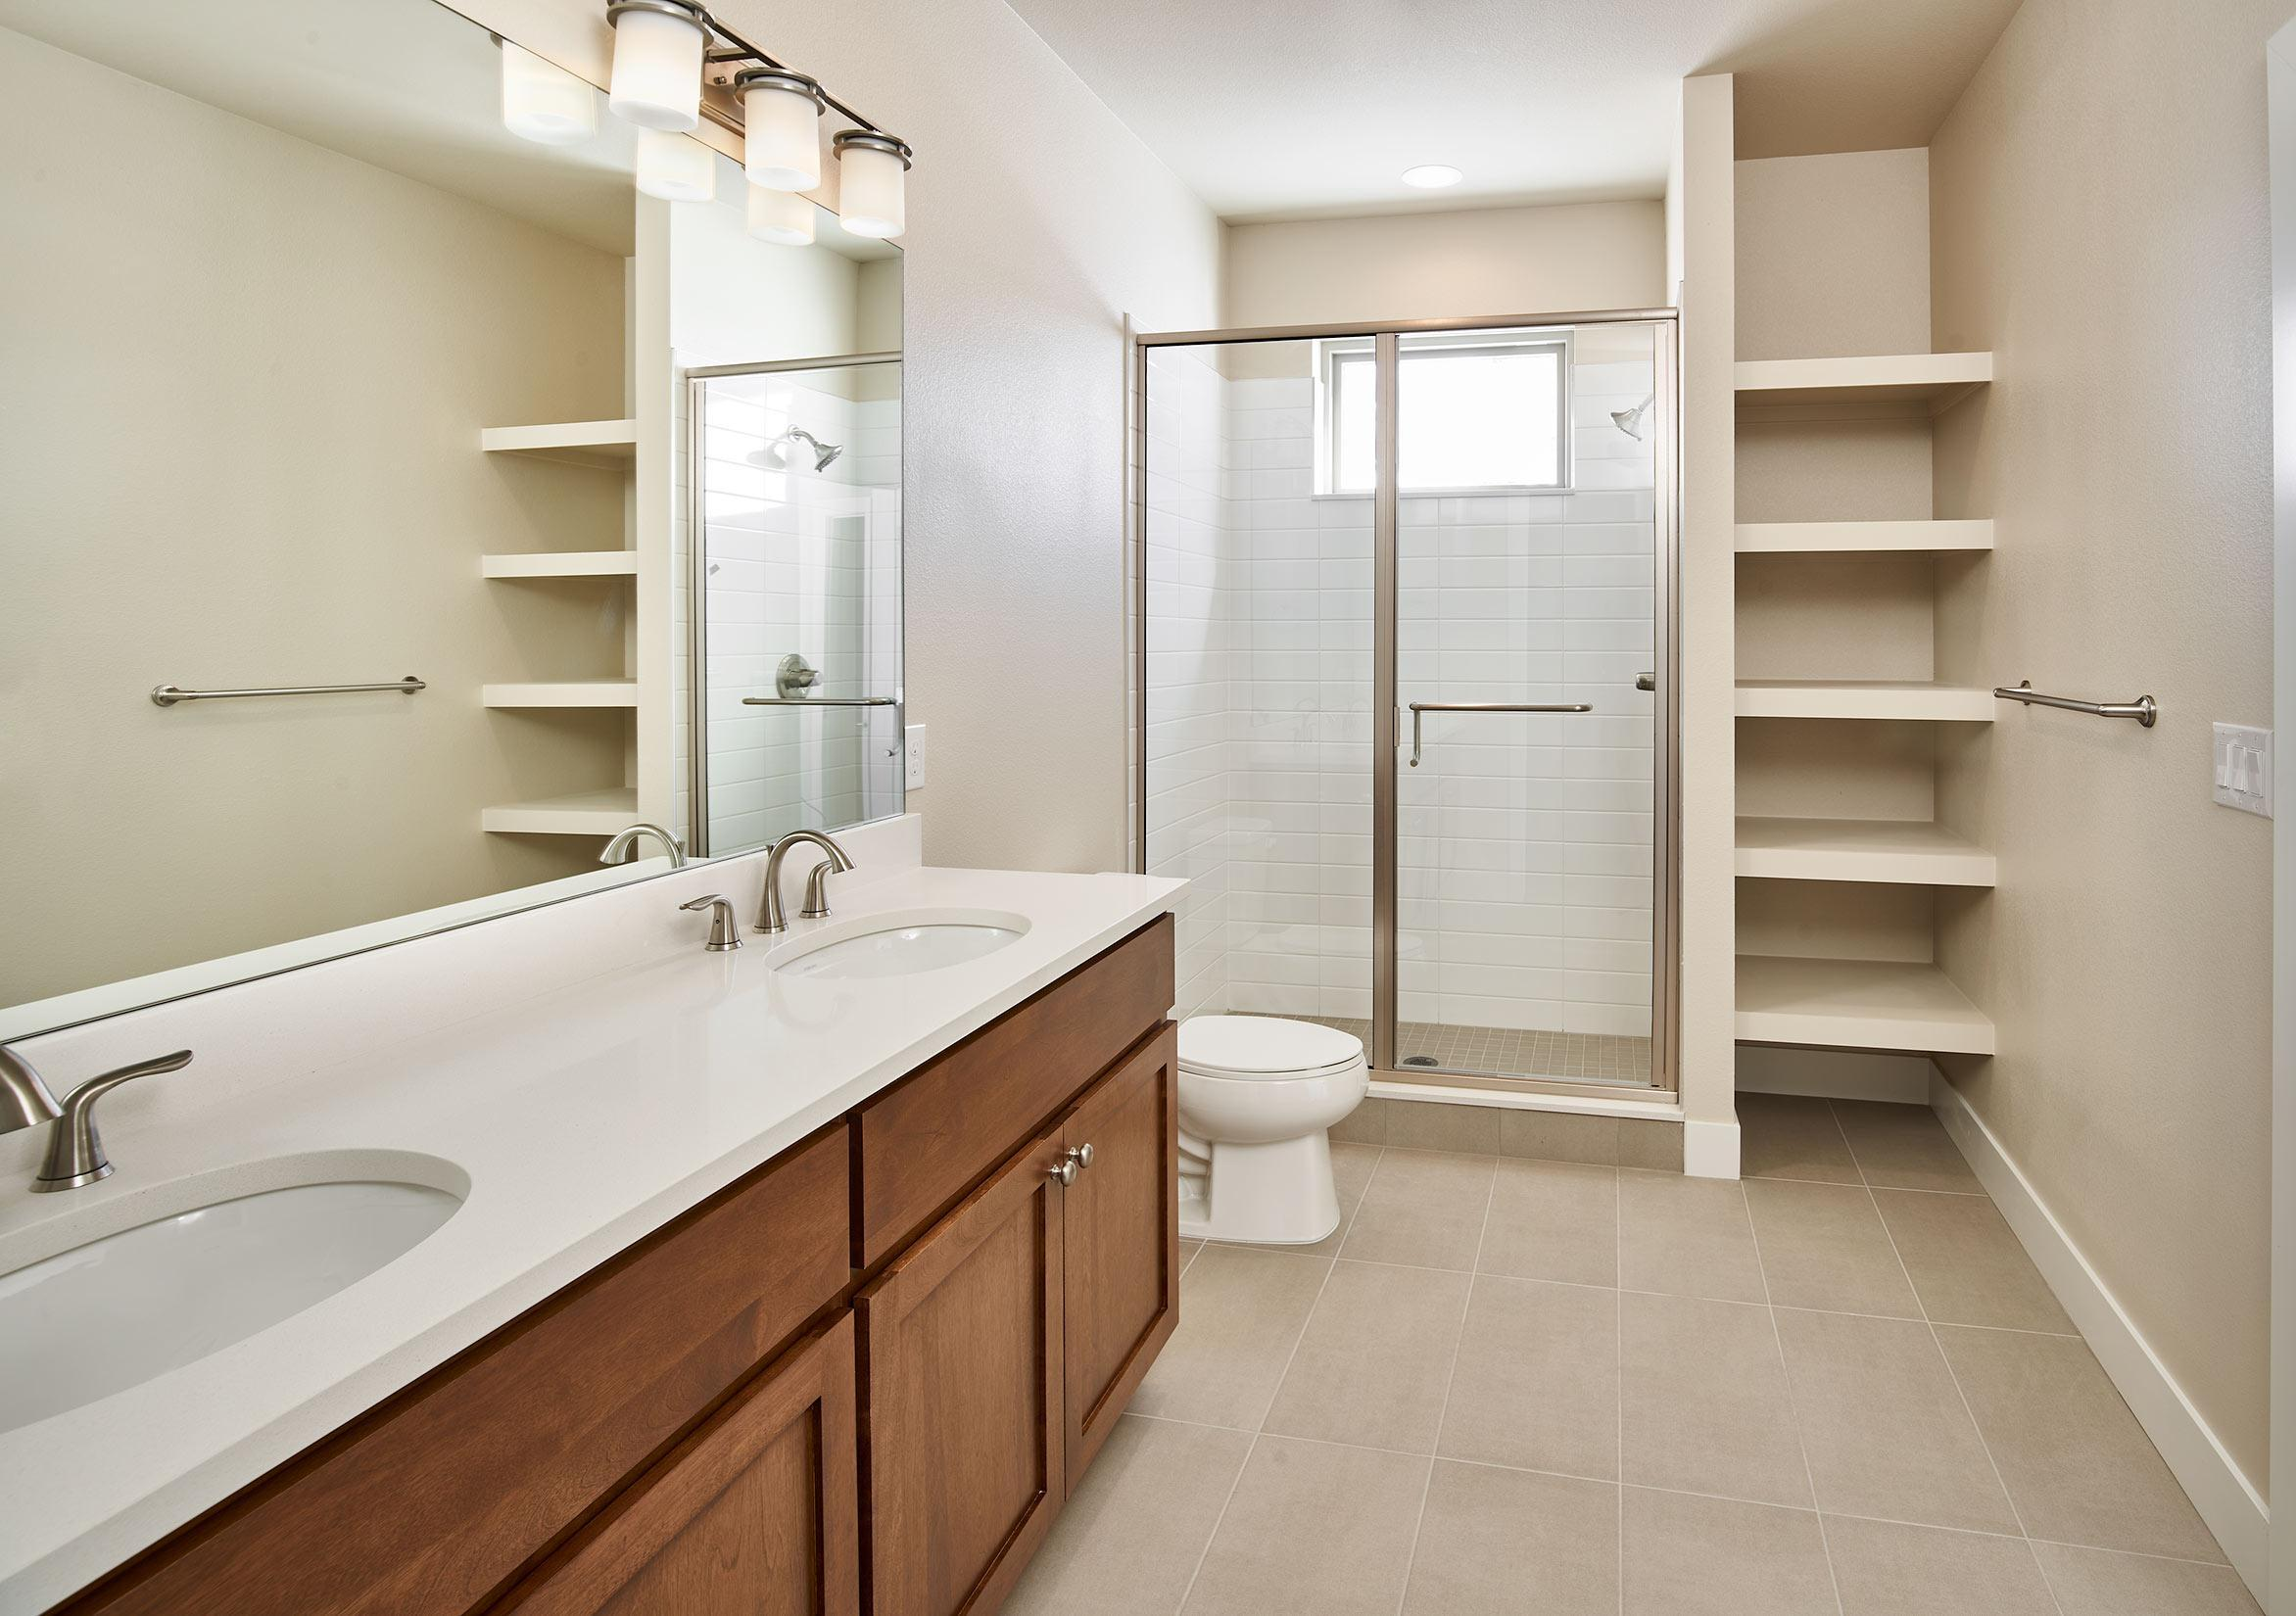 Bathroom featured in the Elkhorn Townhome - Uphill A - interior By Rendezvous Colorado